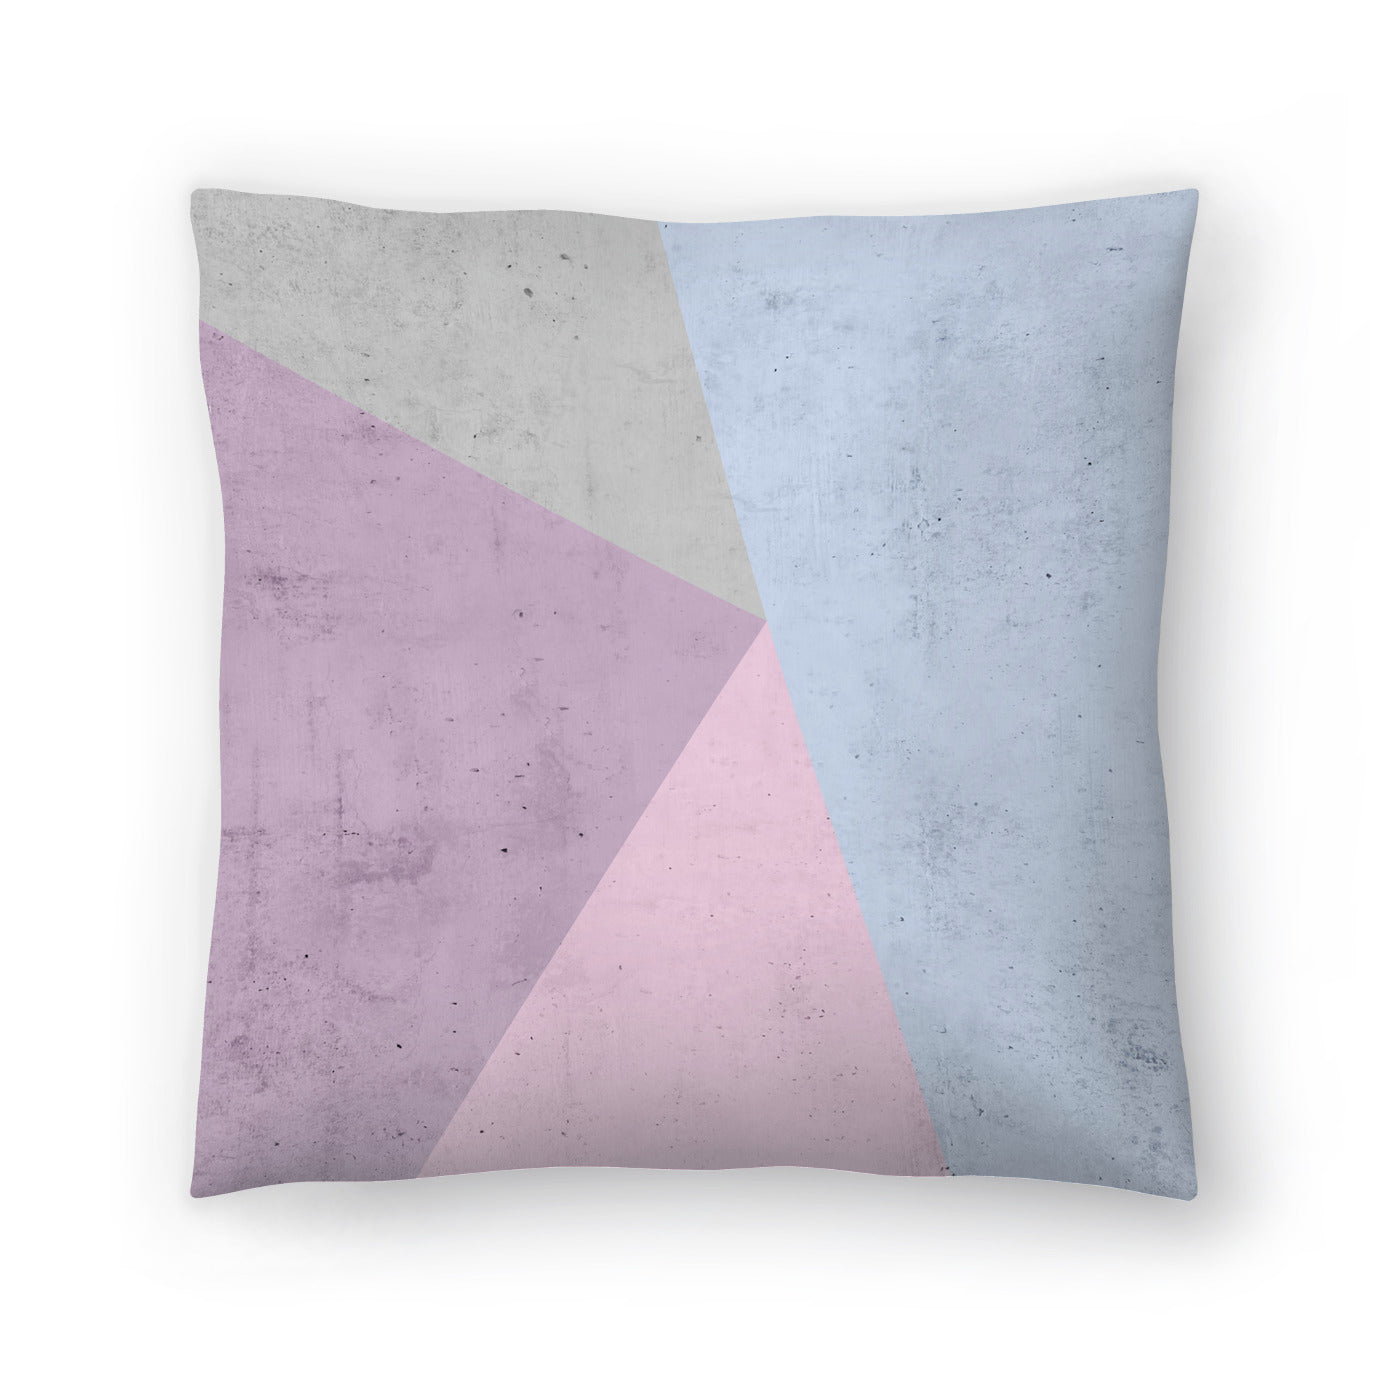 Cold Tones Geometry by Emanuela Carratoni Decorative Pillow - Decorative Pillow - Americanflat